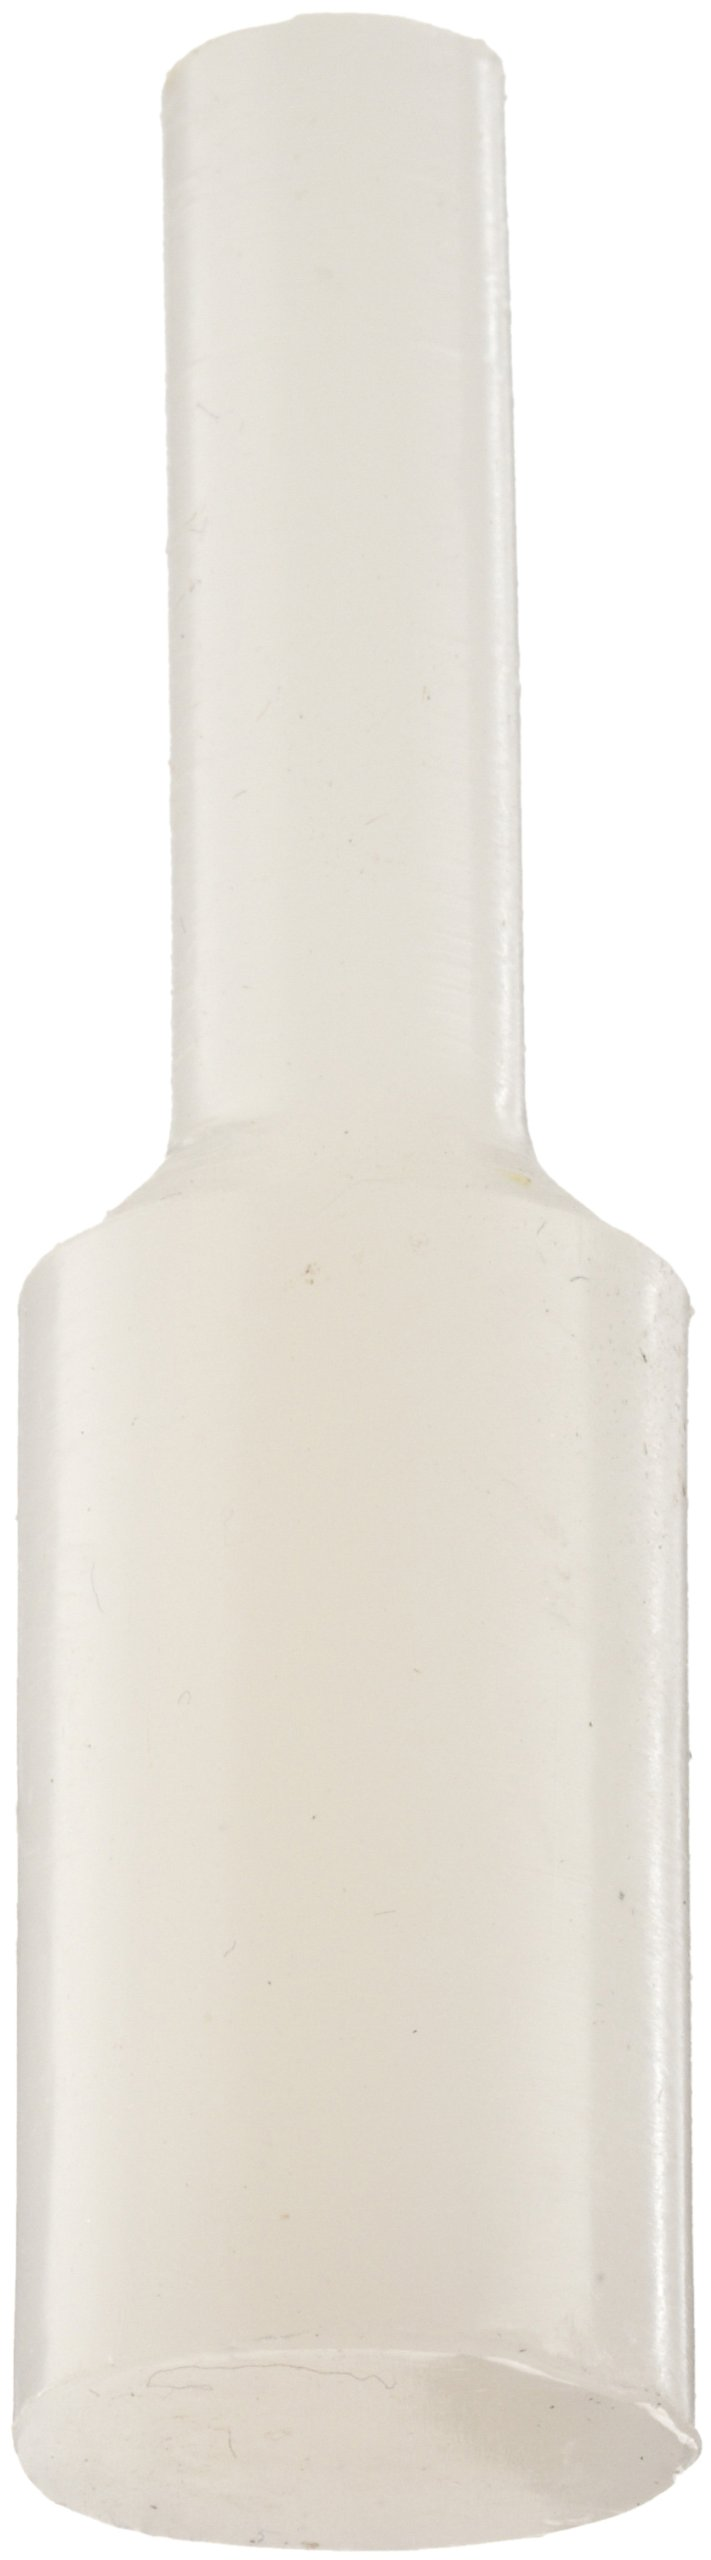 Kapsto 606 / 0196 Silicone Pull Plug, Natural, 19.6 mm (Pack of 100)